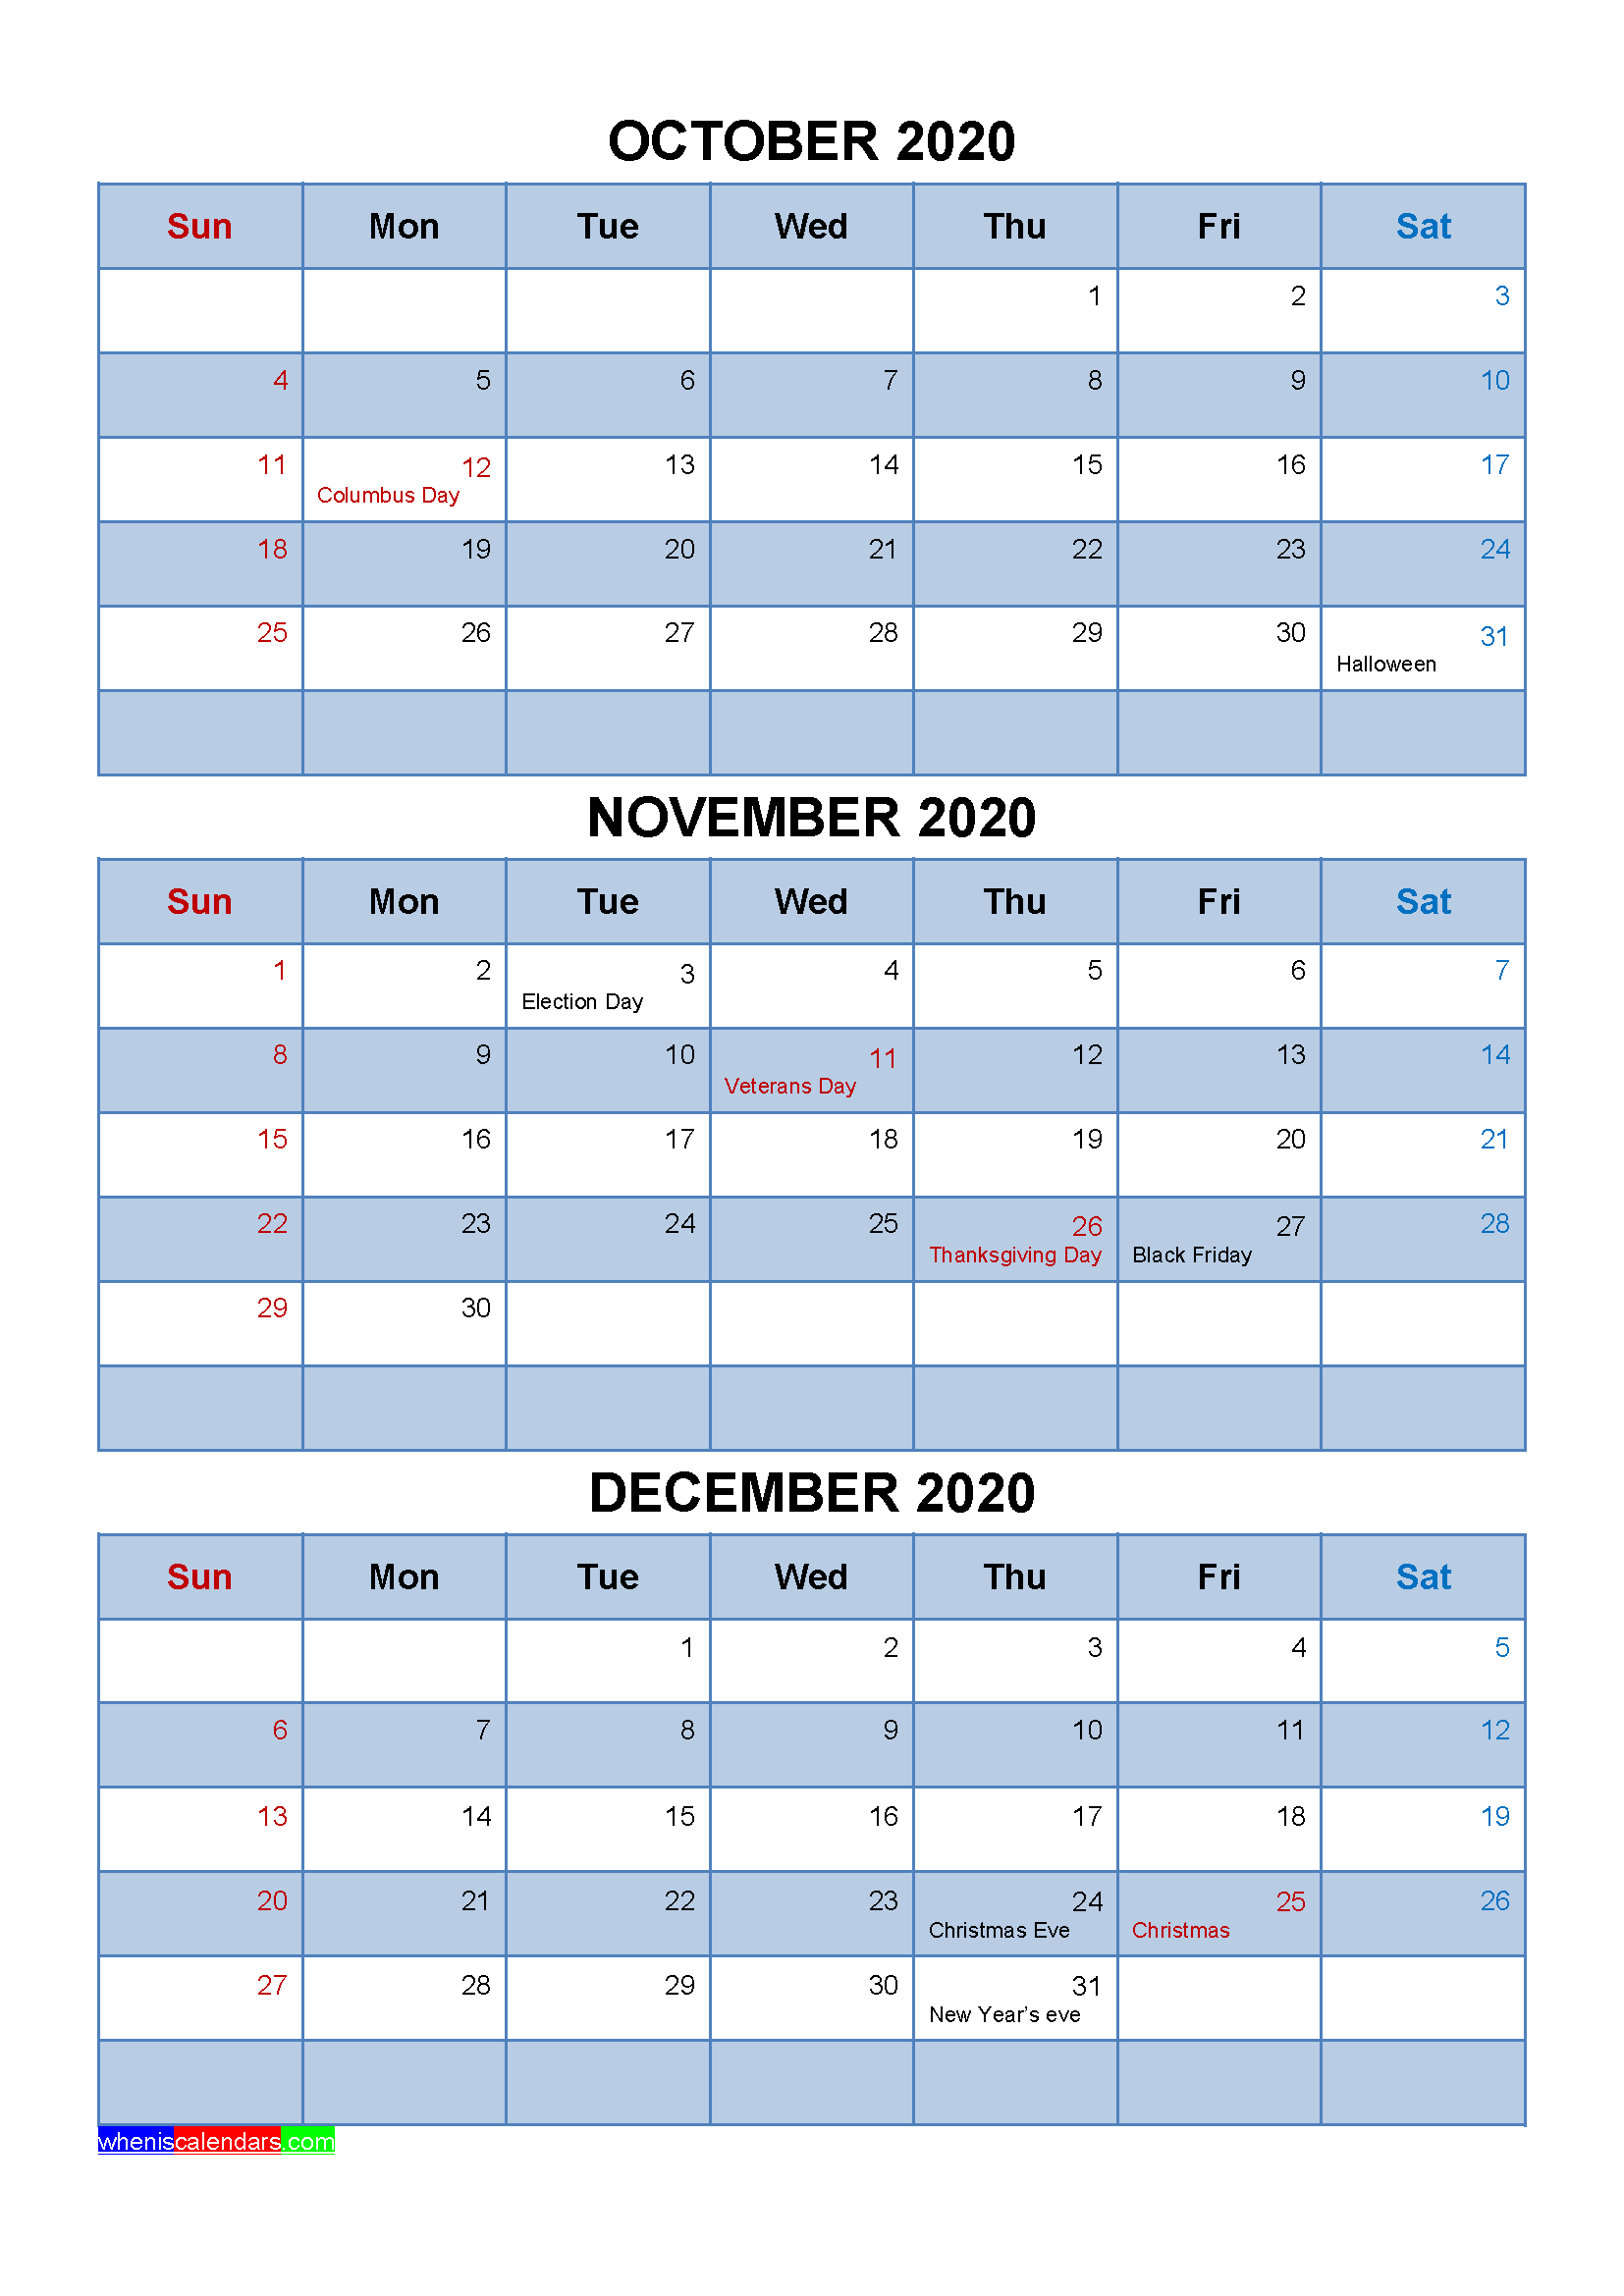 Free Calendar October November December 2020 with Holidays